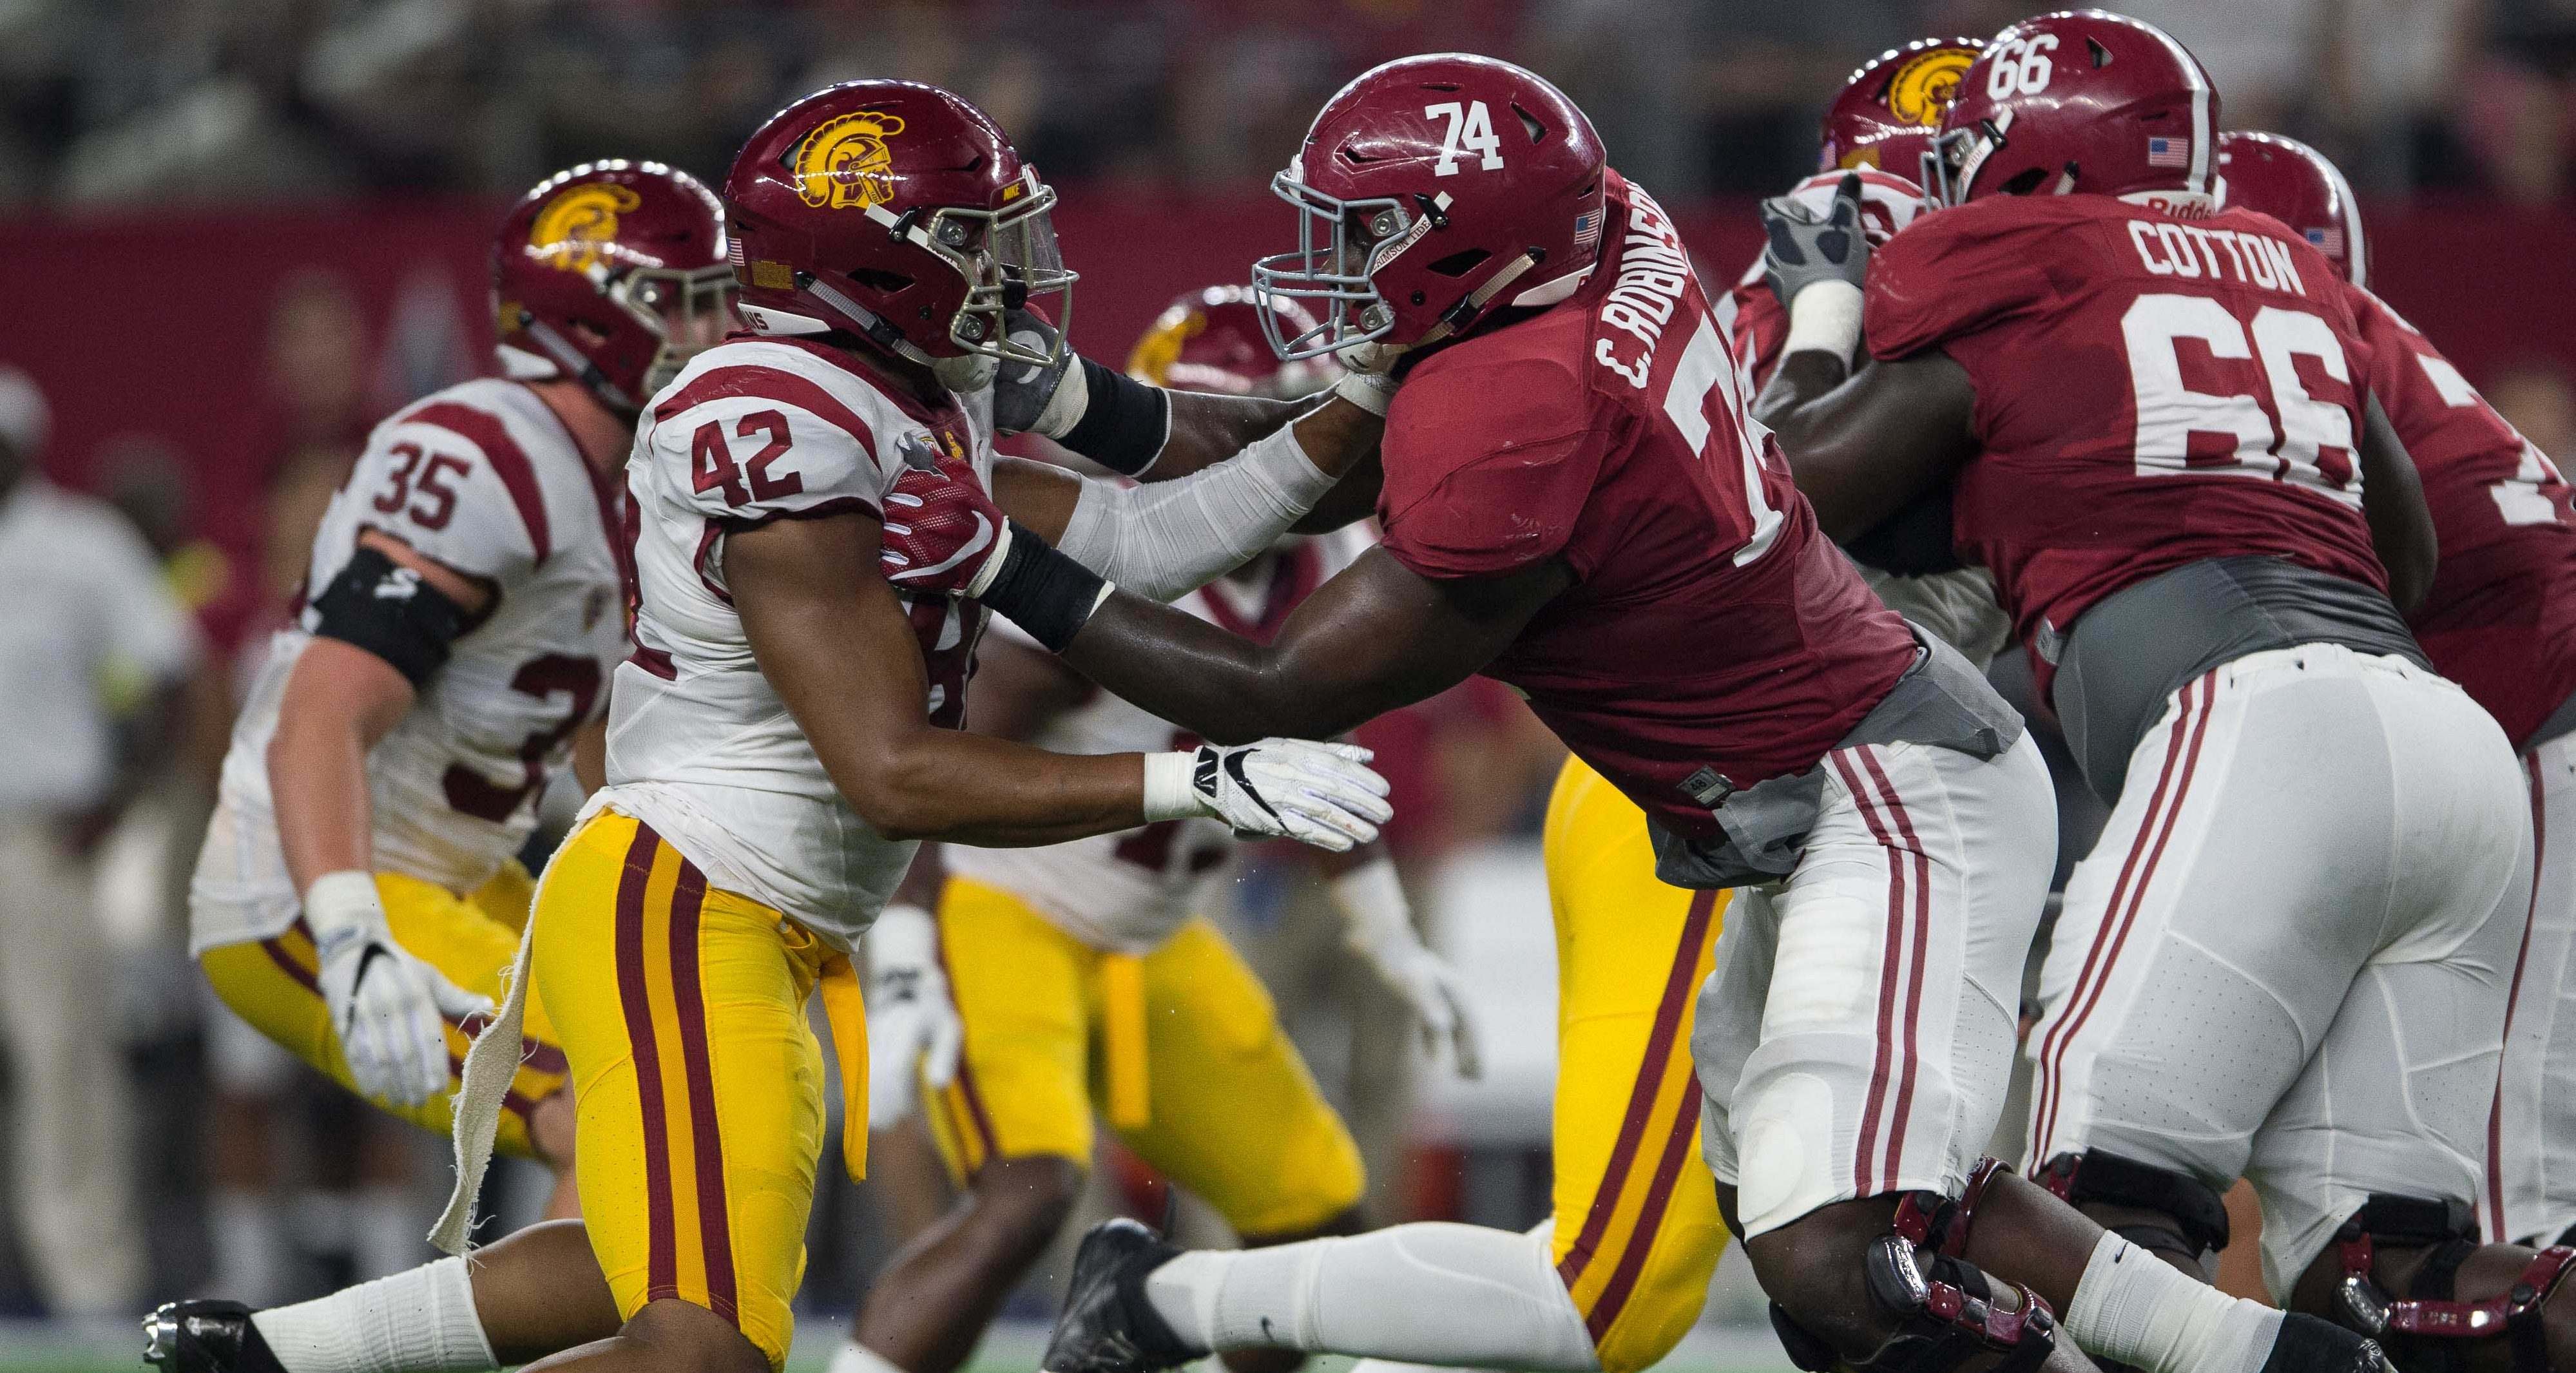 Usc Football Schedule 2020.2020 Sec Schedules Released Alabama To Host Uga At Bryant